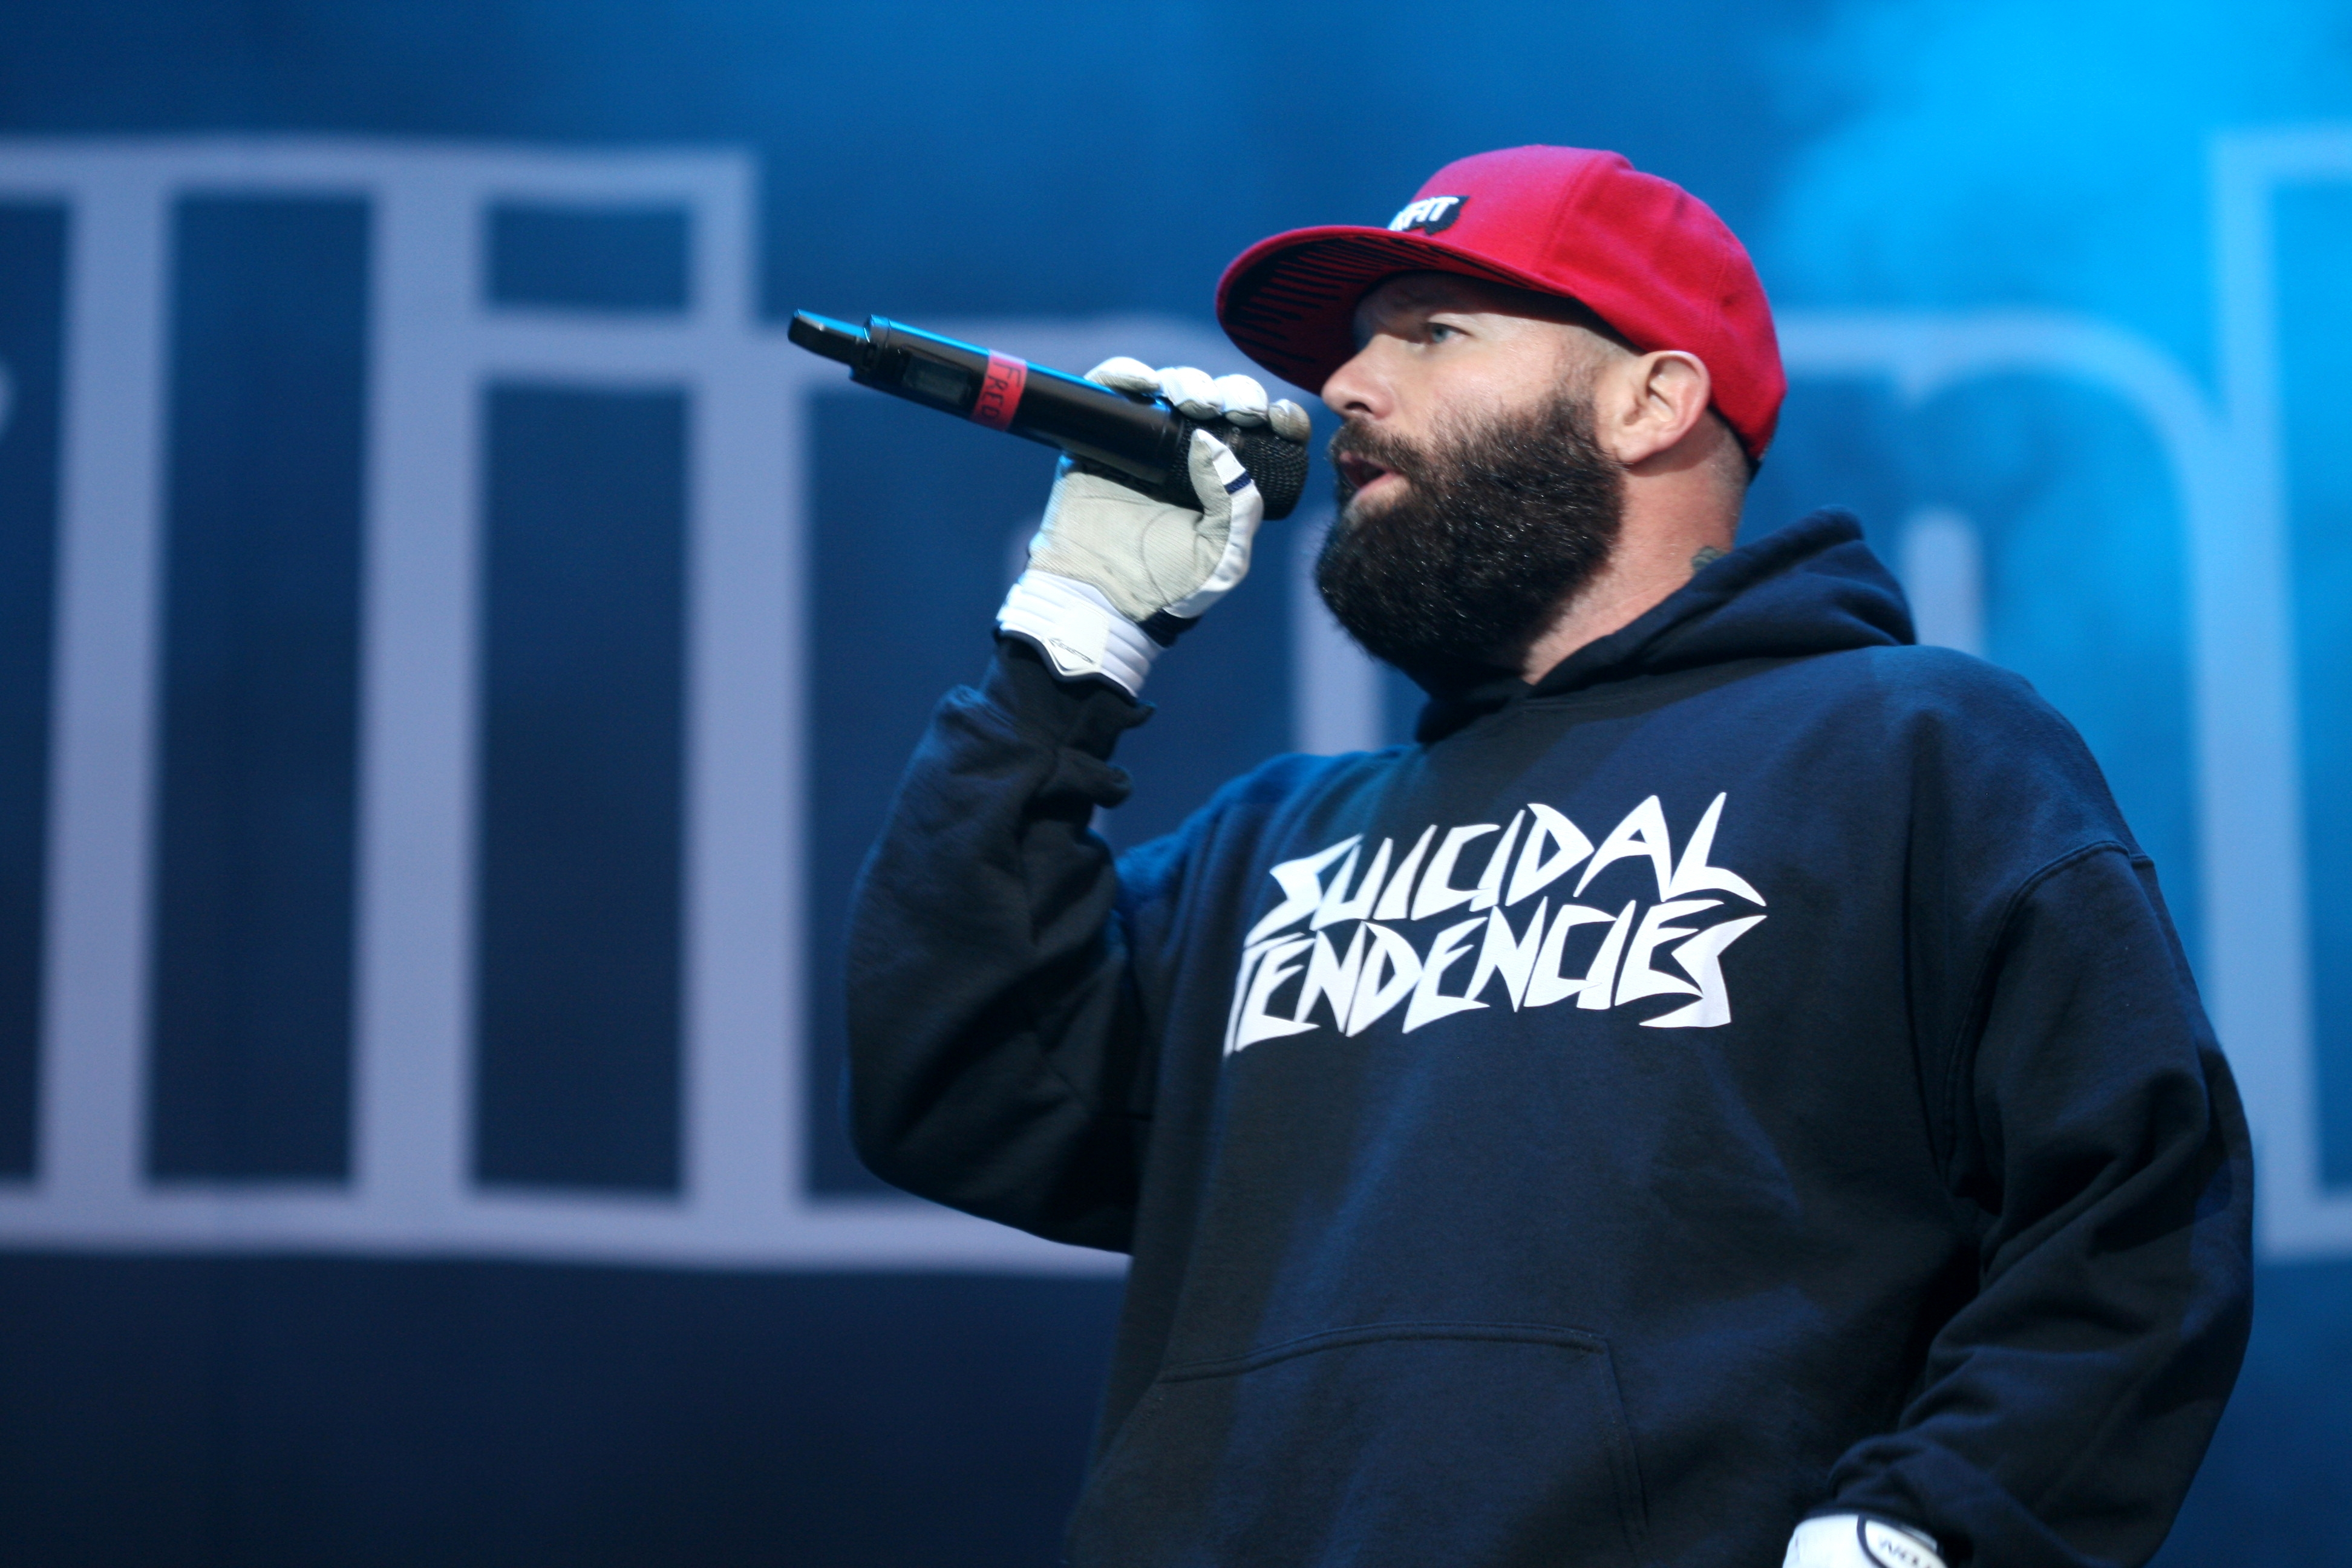 Fred Durst Wallpapers Images Photos Pictures Backgrounds 3888x2592